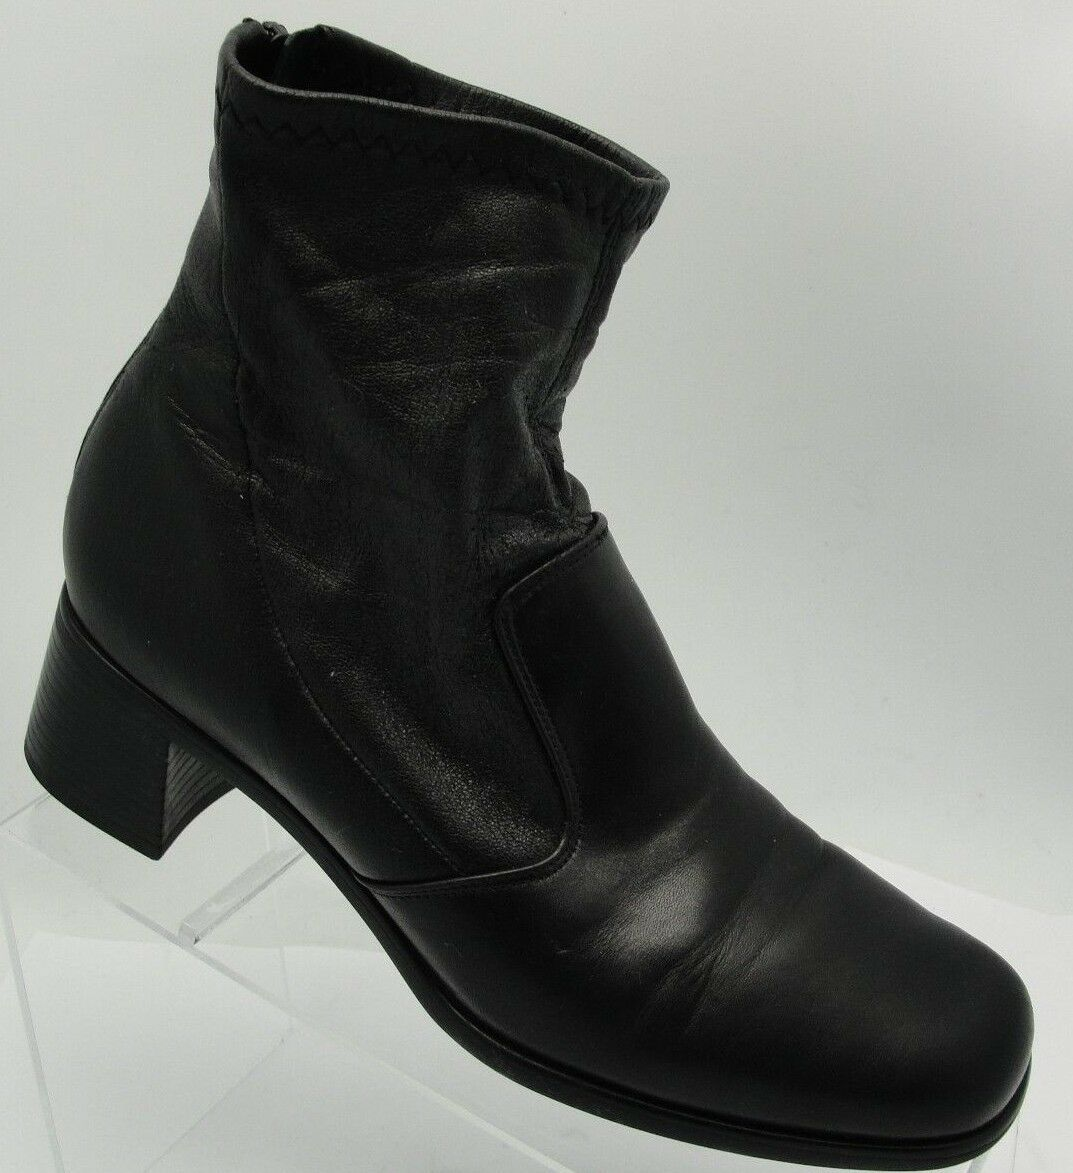 Munro American Sz 7M Black Leather Booties Back Zip Women's Ankle Boots S49